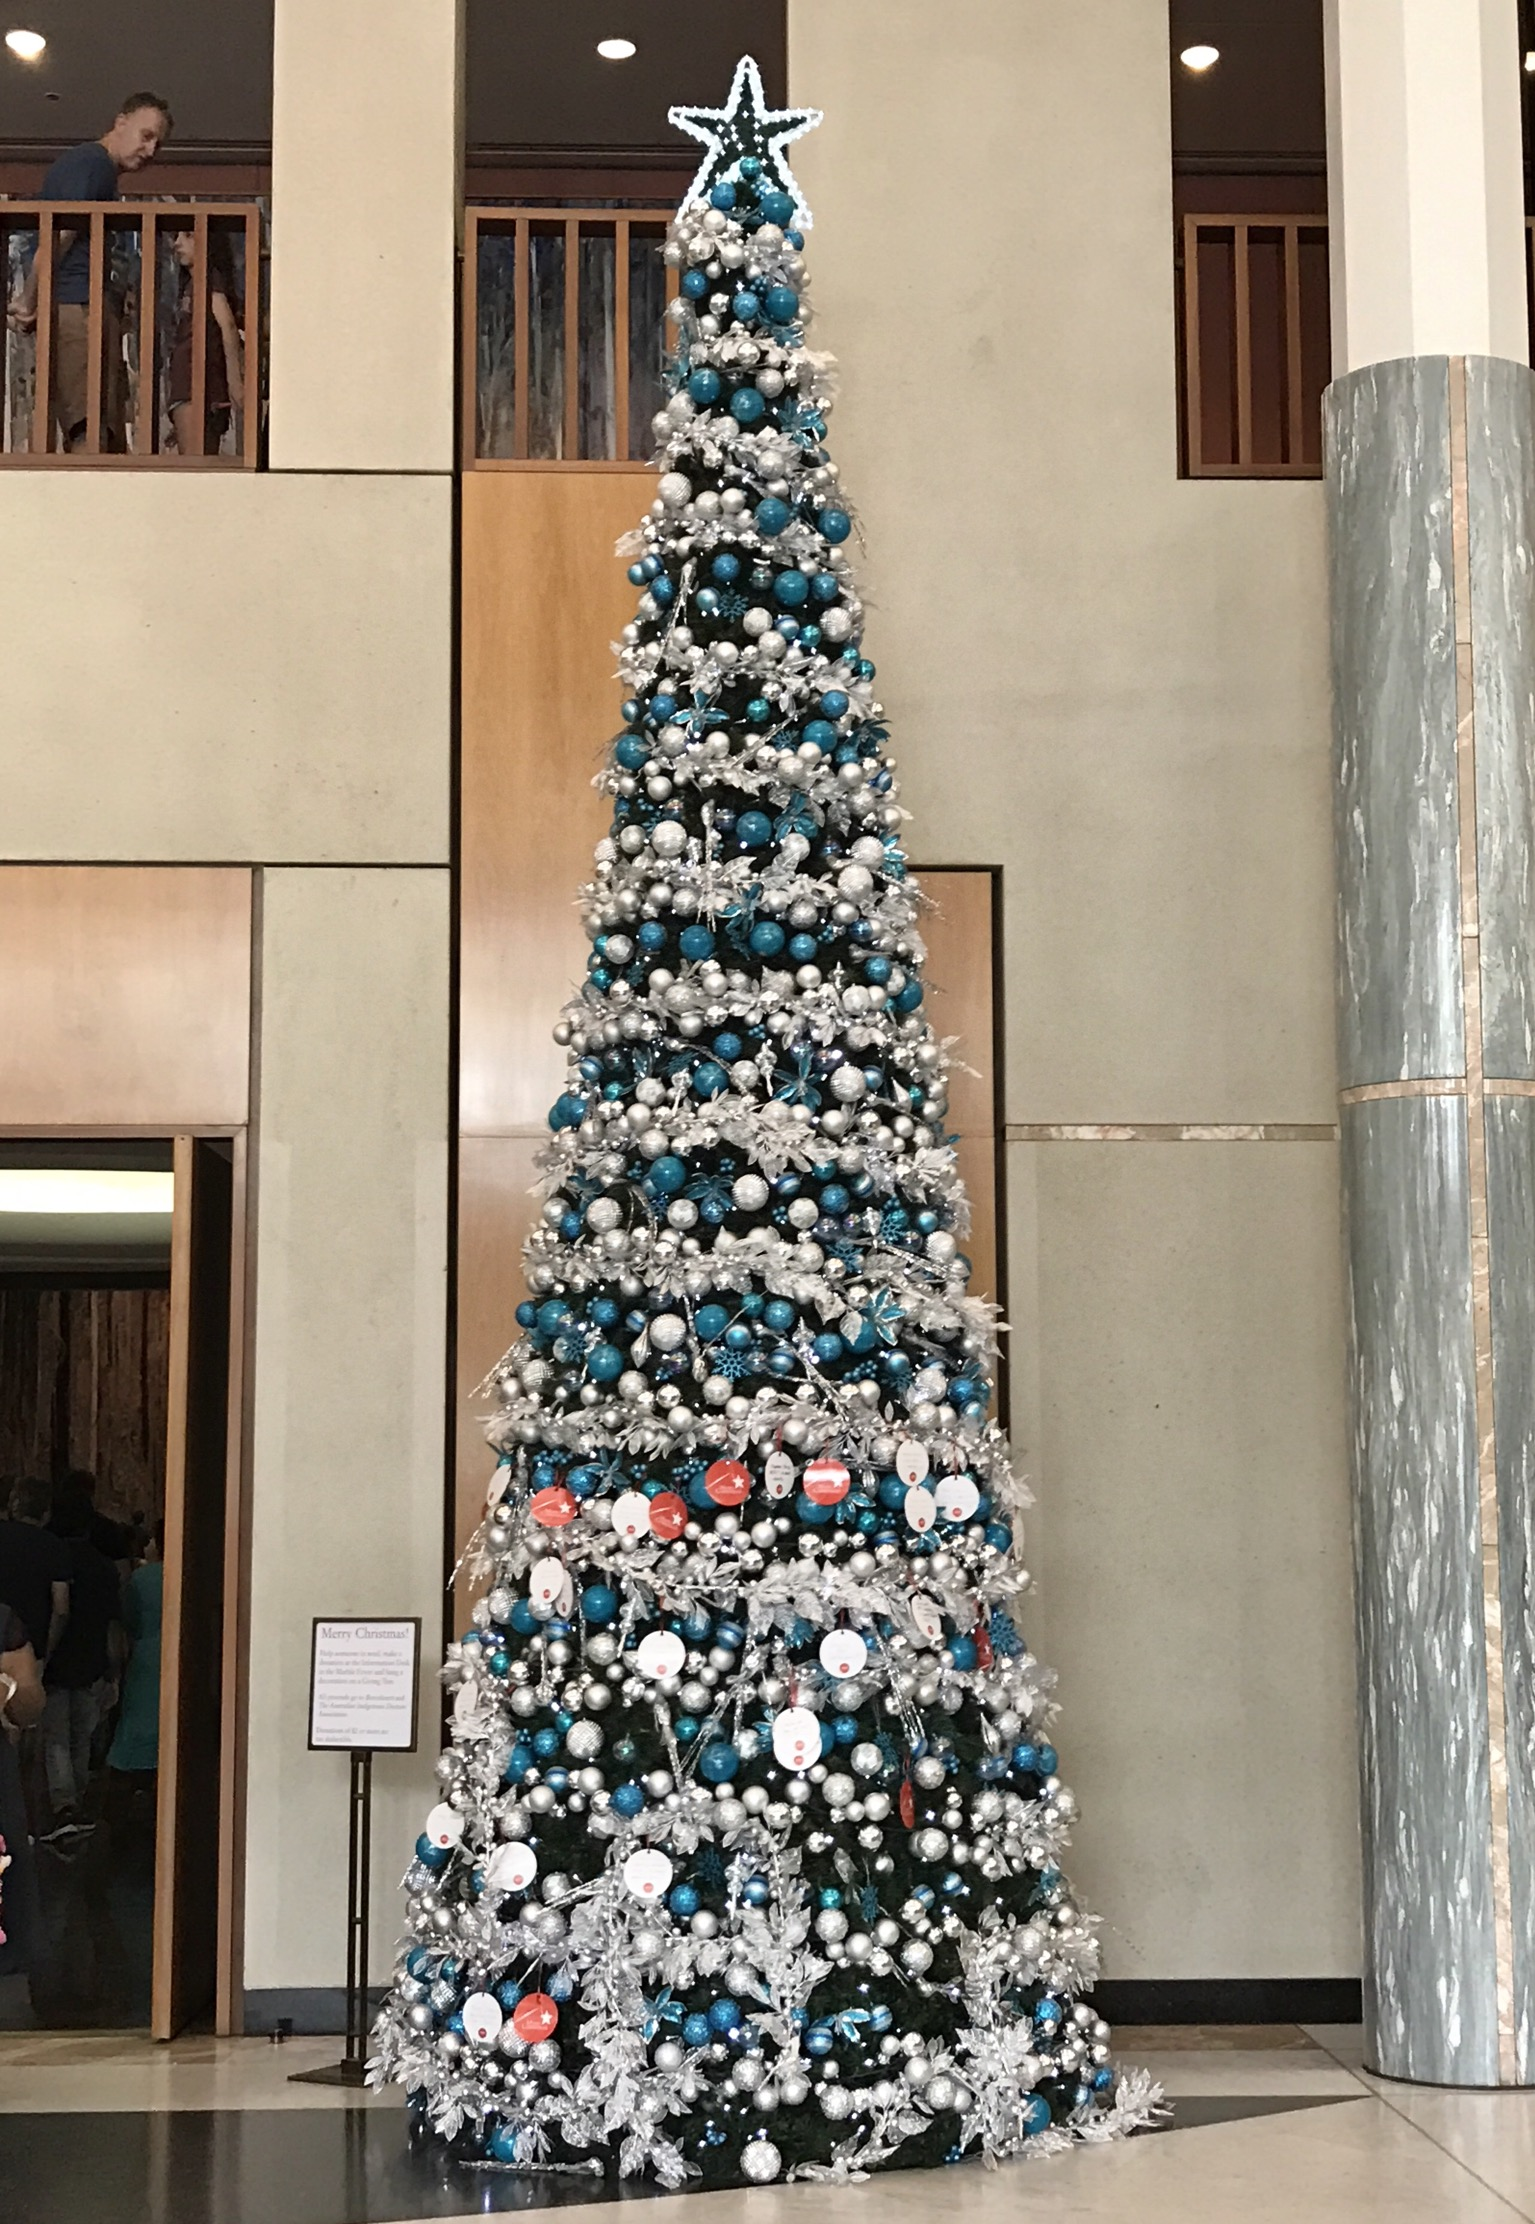 Parliament House Marble Foyer : File marble foyer with christmas tree parliament house